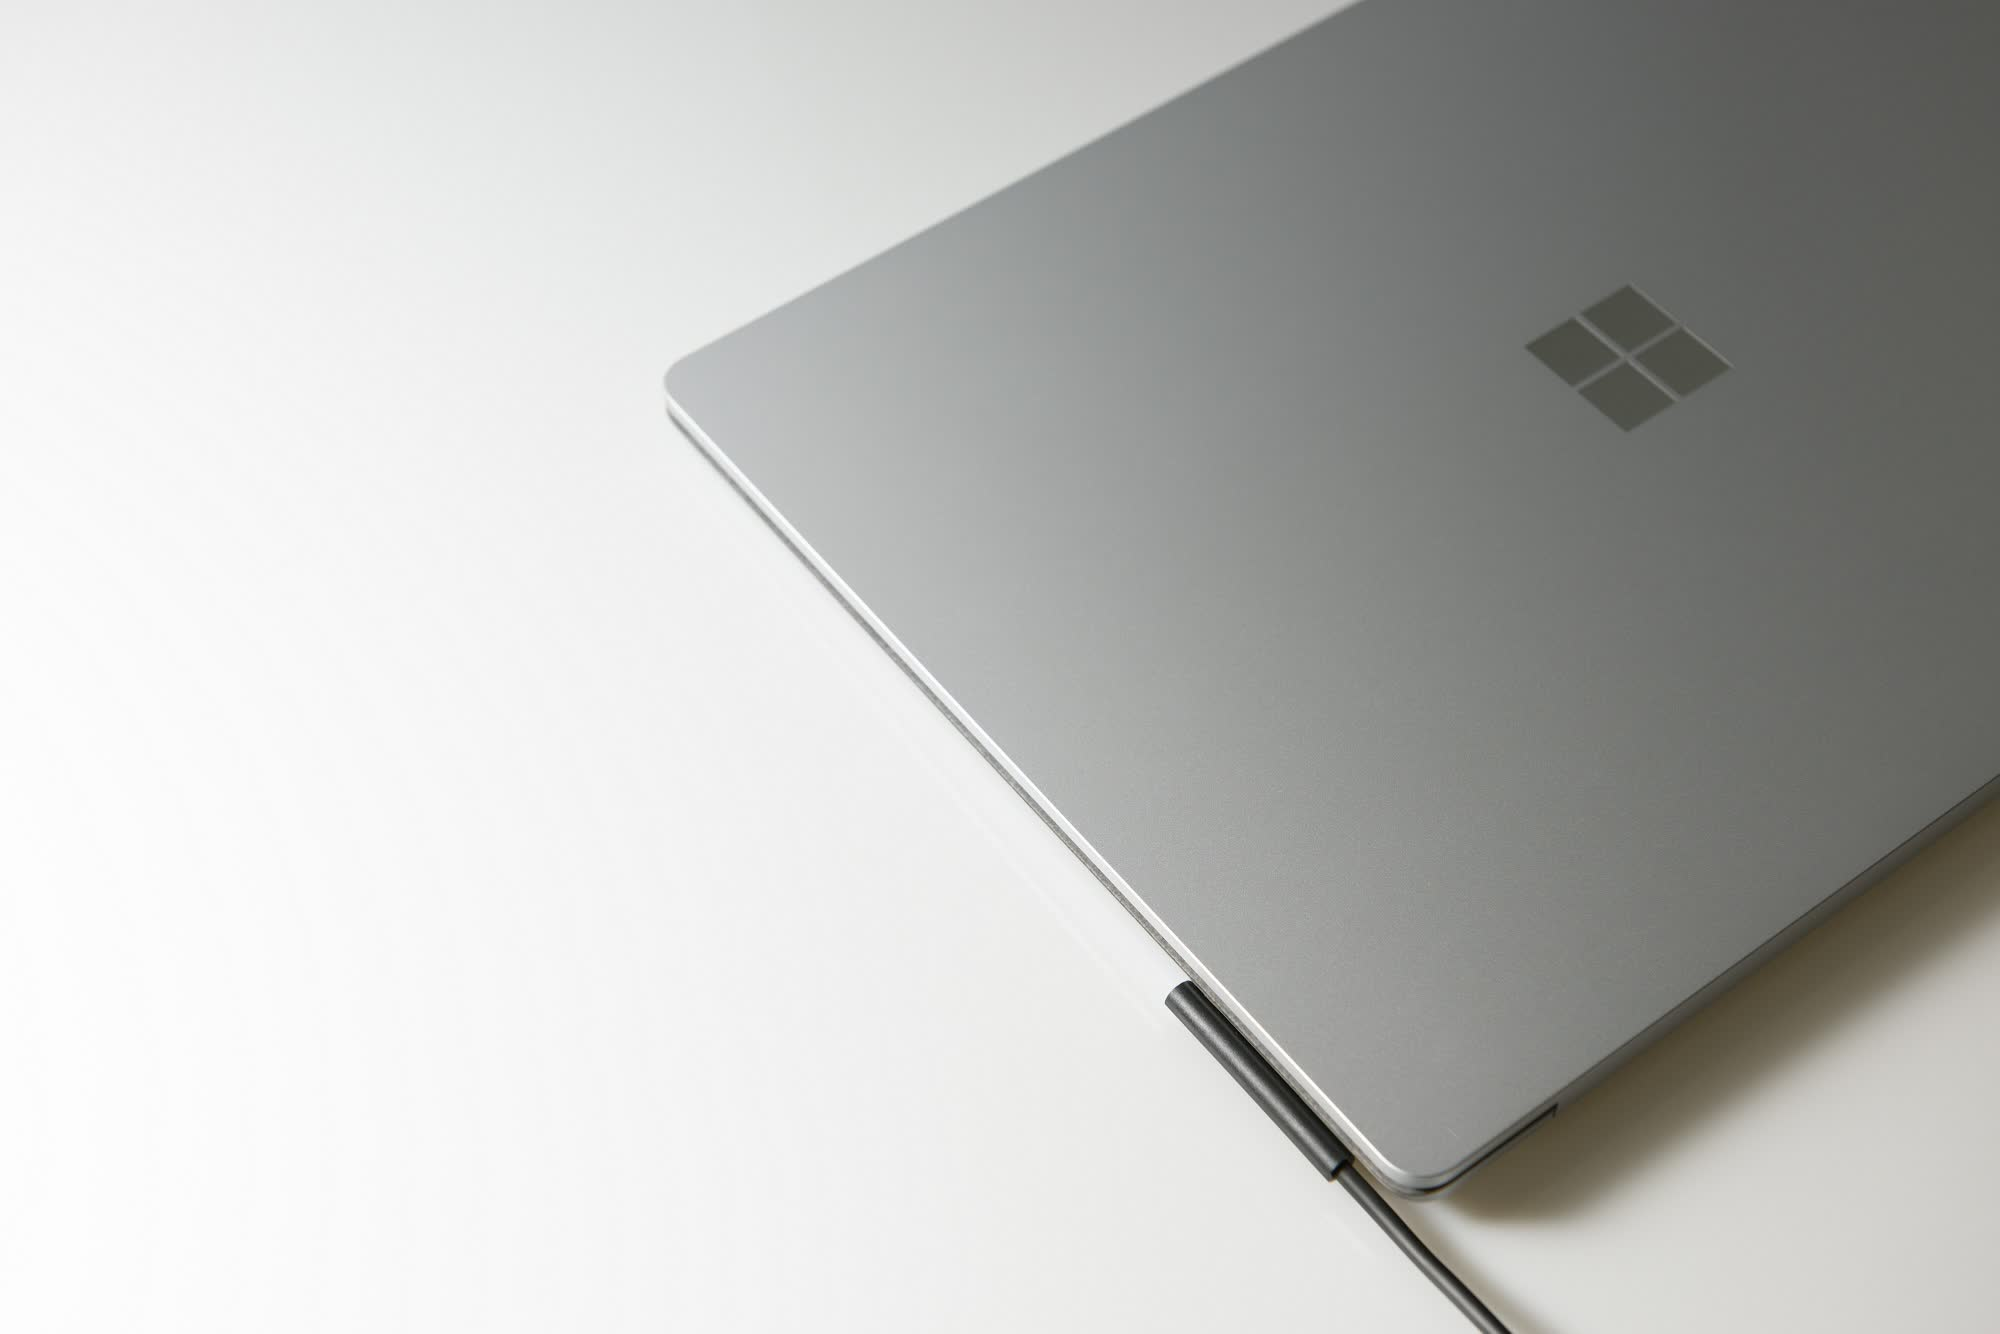 Leaked Microsoft Surface 4 specs show both models will offer AMD and Intel CPUs